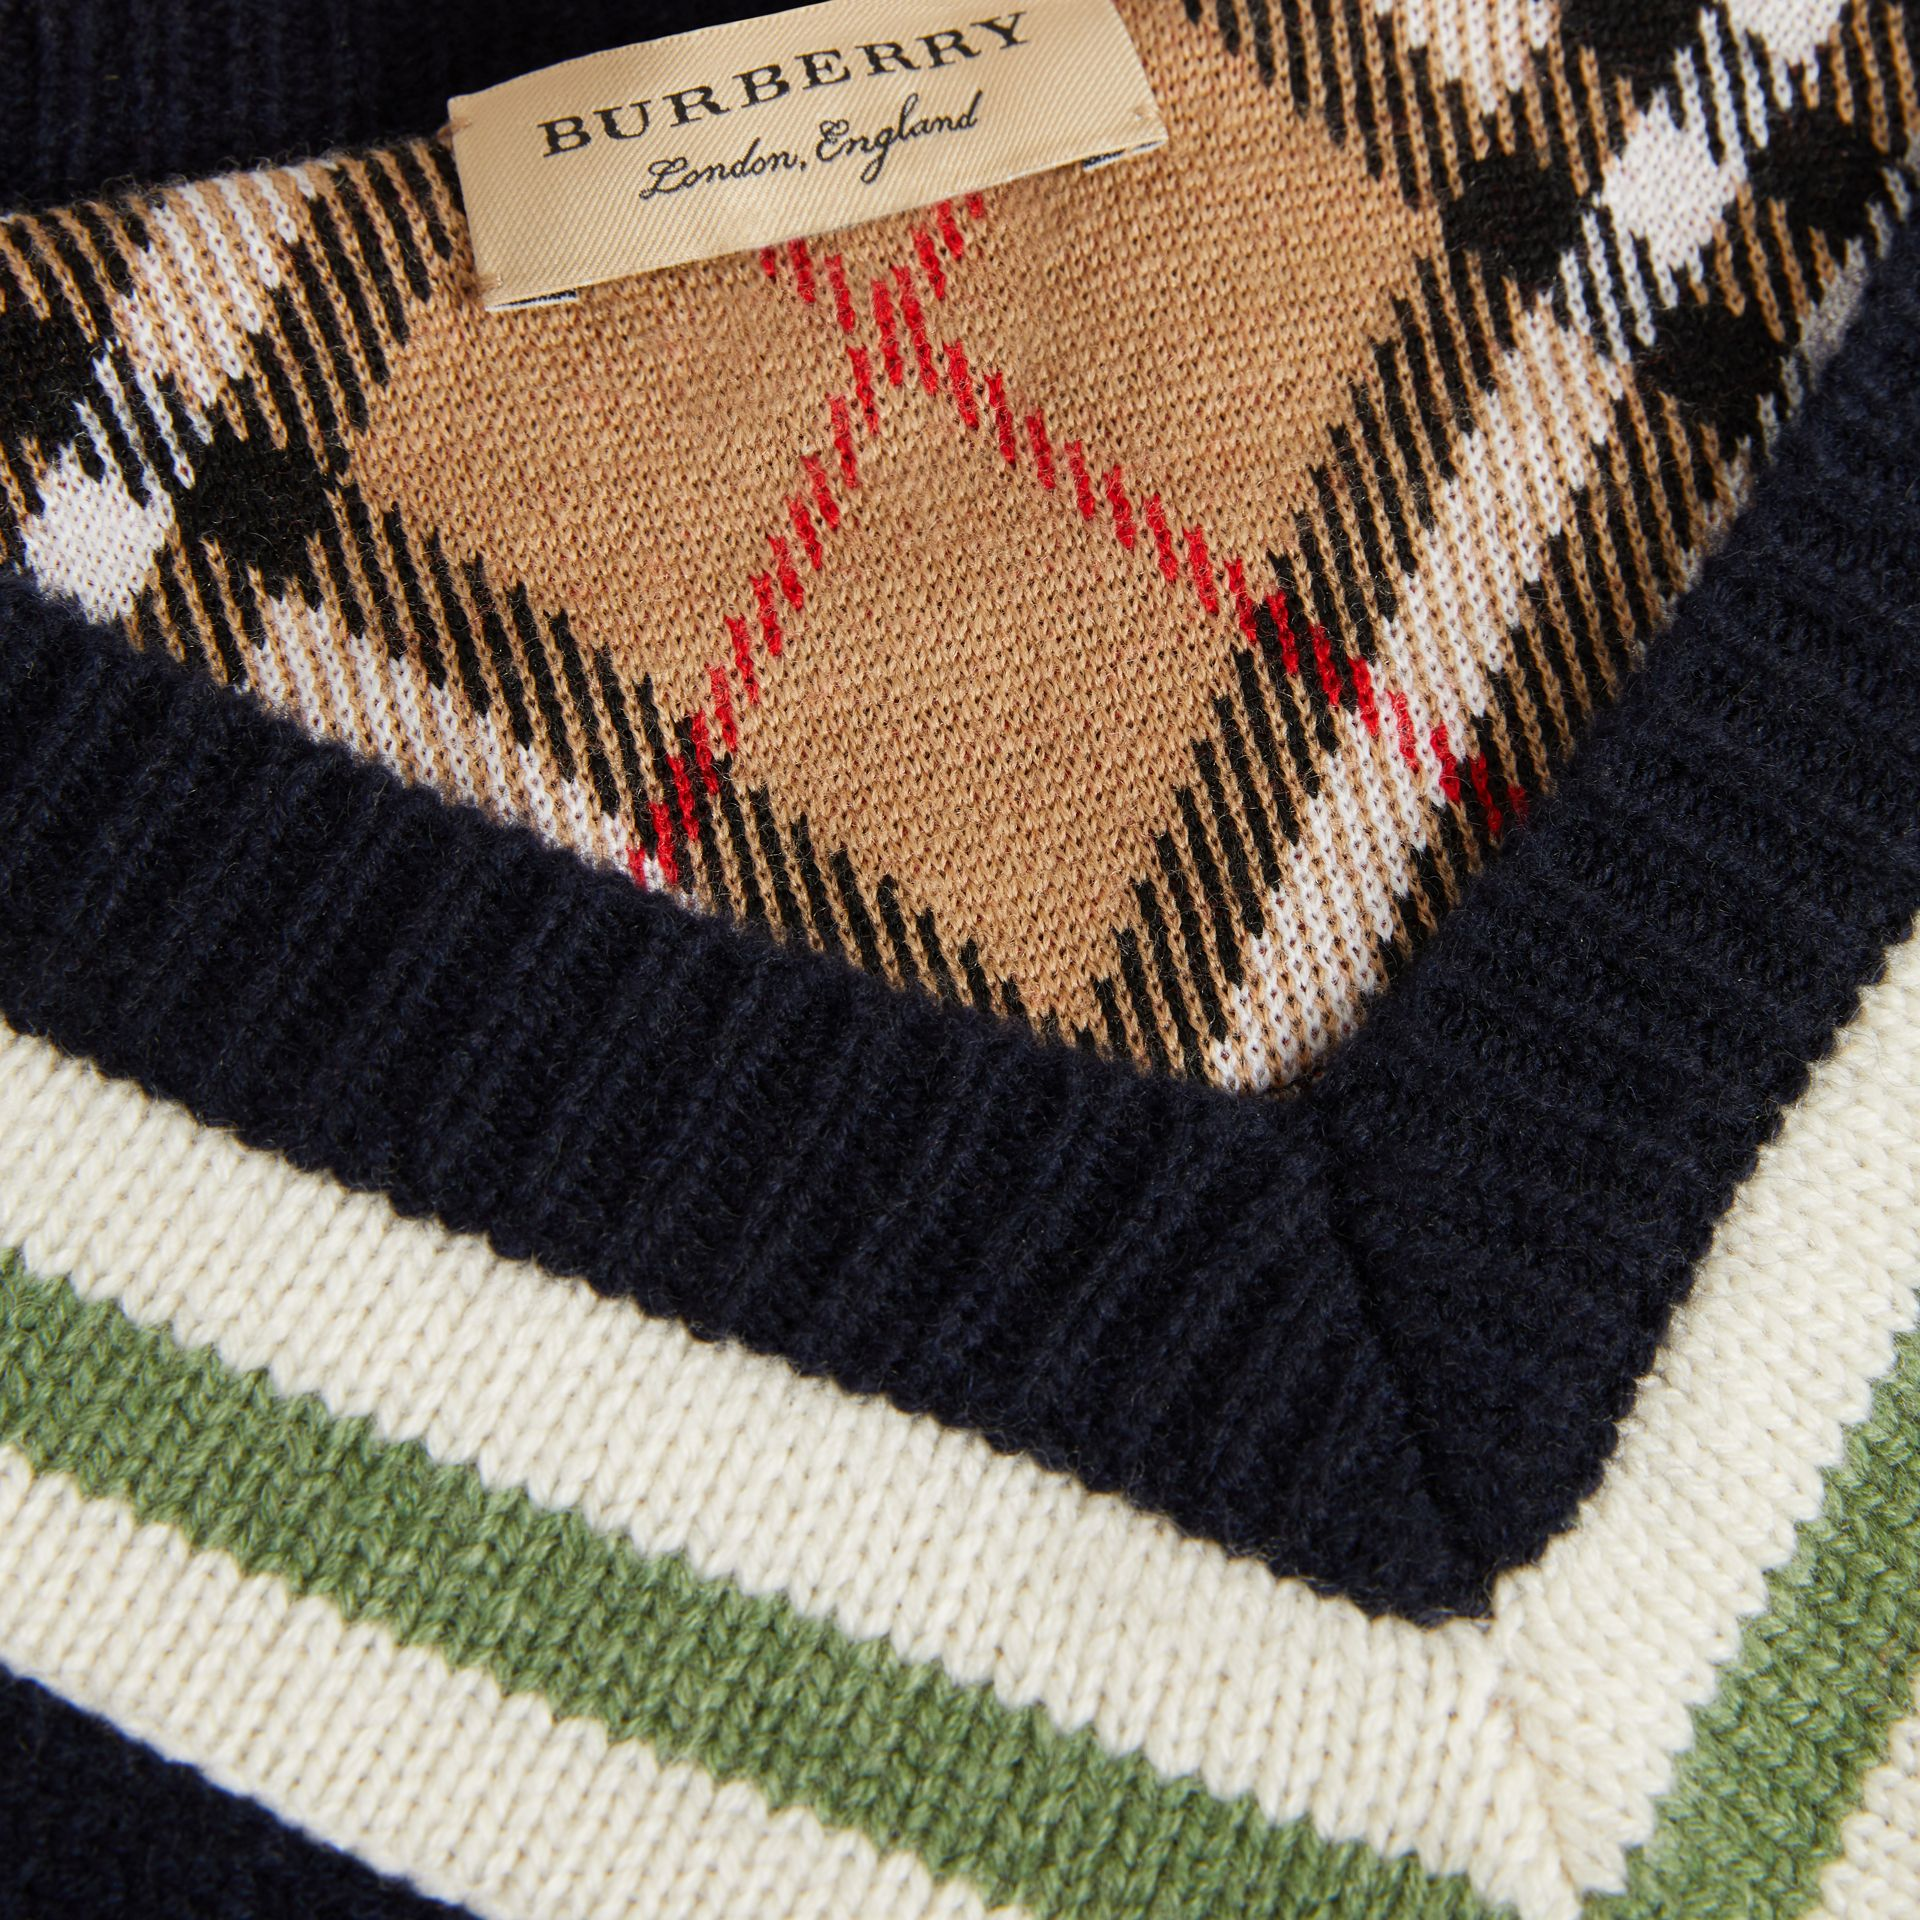 Embroidered Crest Wool Cashmere Sweater in Navy - Women | Burberry Canada - gallery image 6